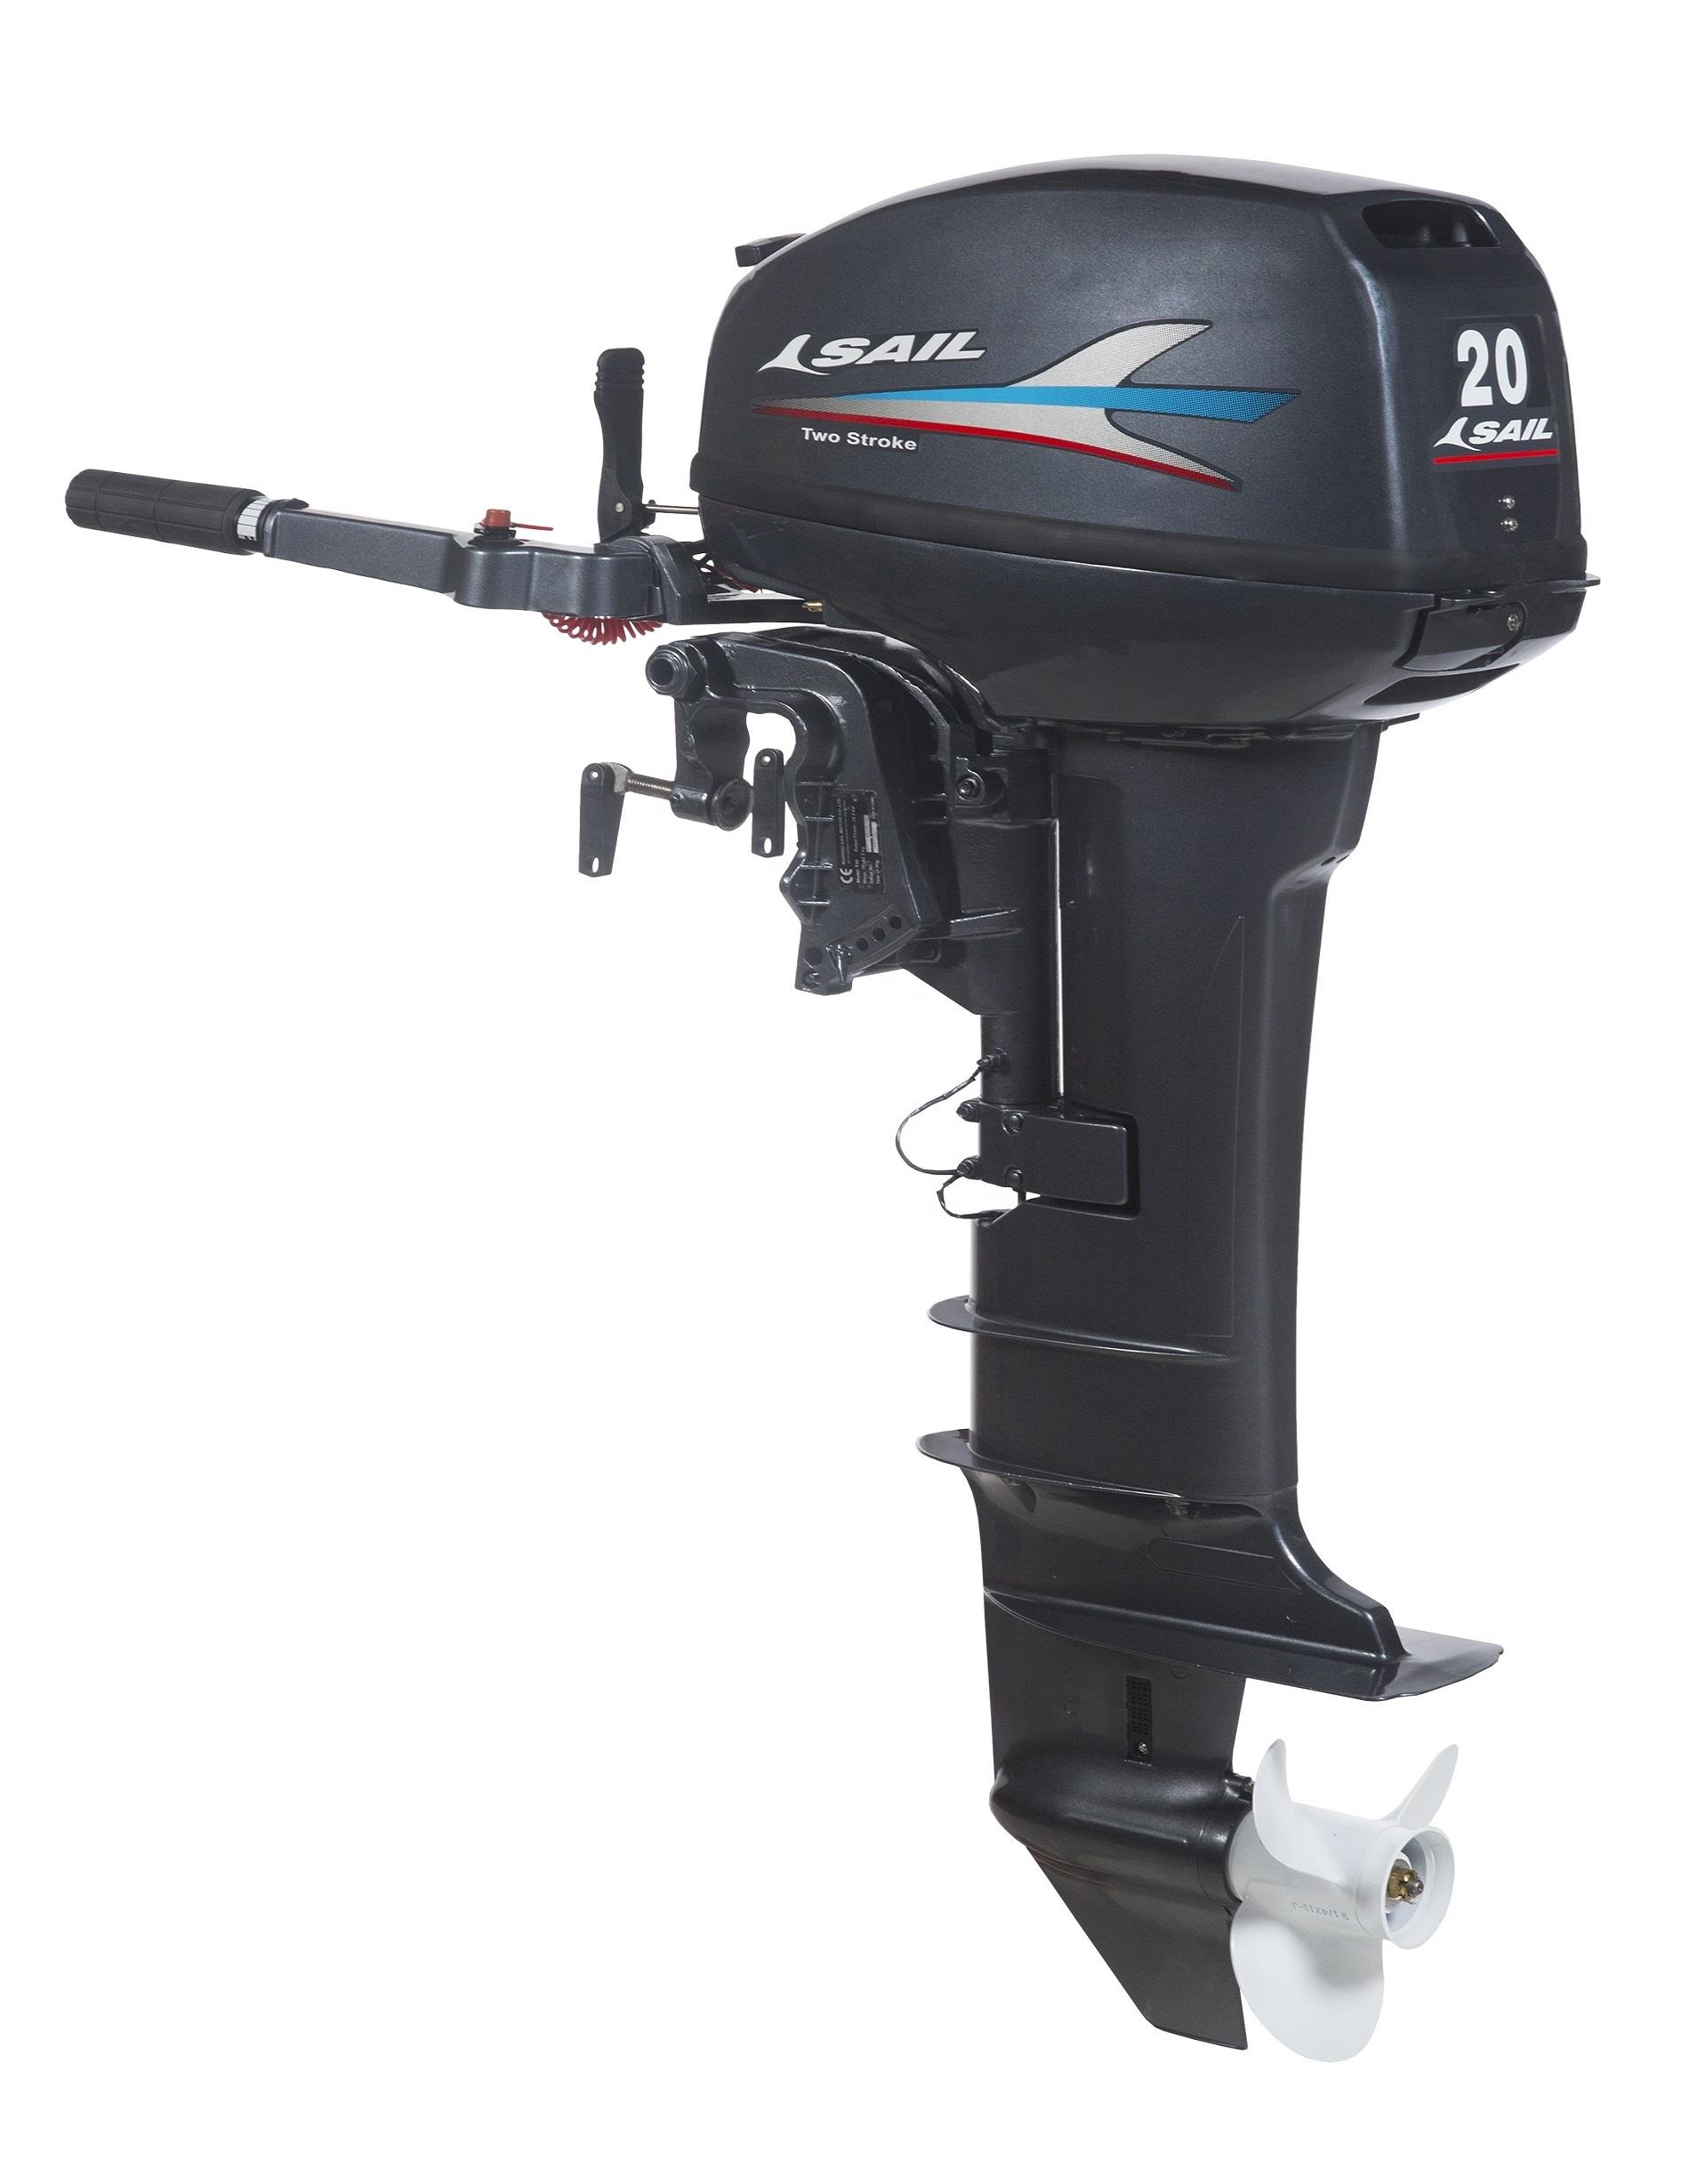 SAIL 2 stroke 20hp outboard motor / outboard engine / boat engine